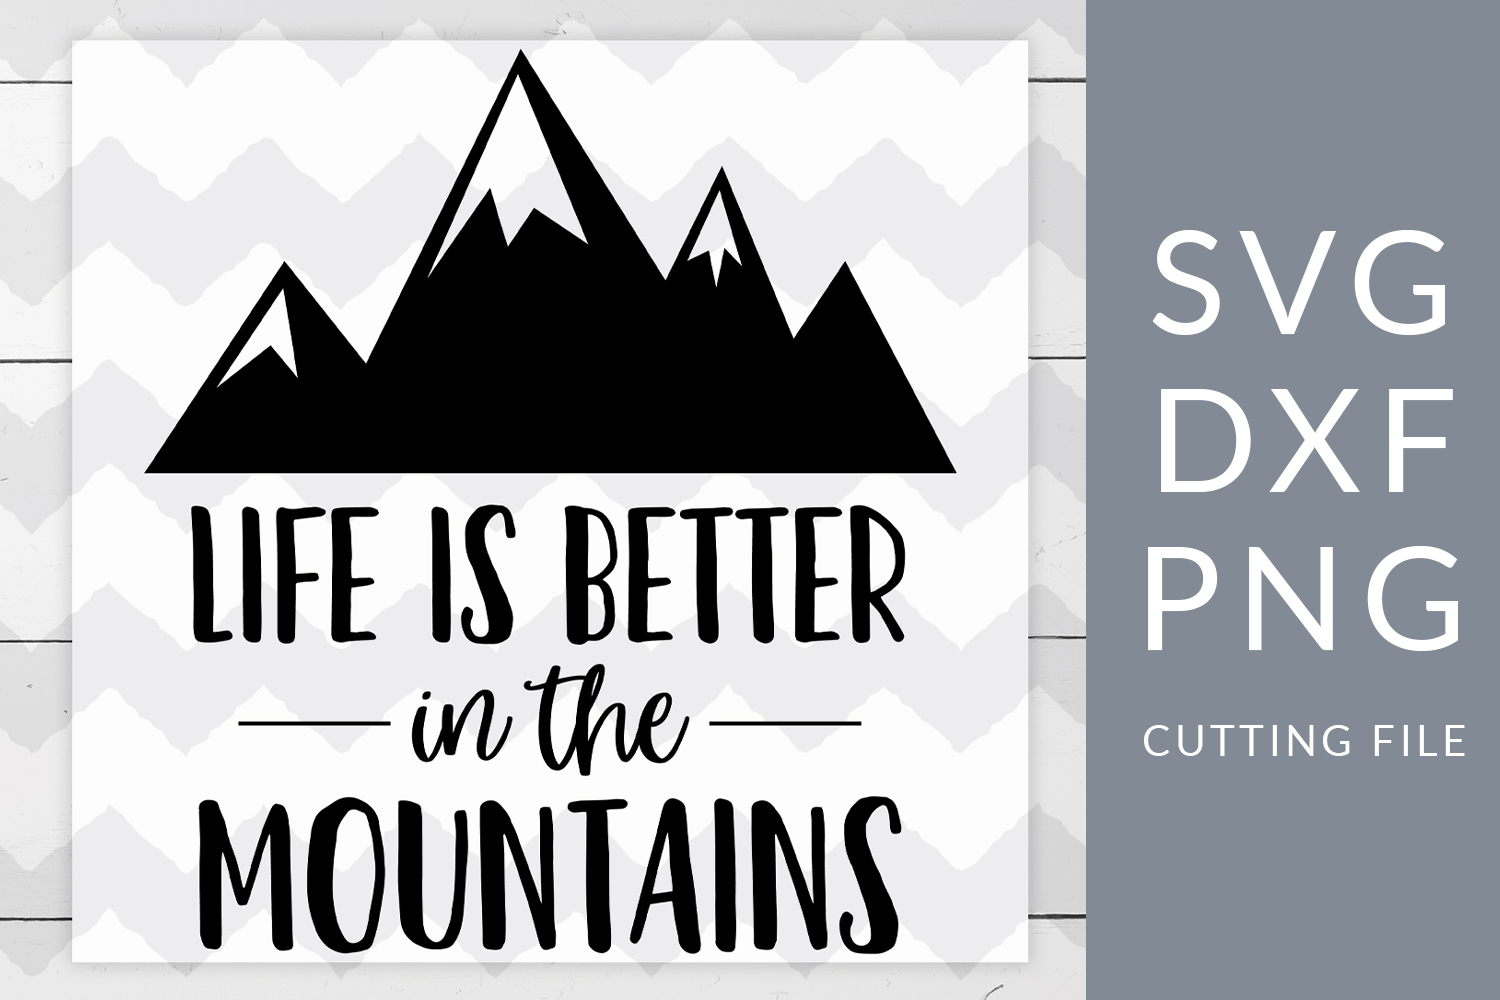 Camping Mountains SVG, DXF, PNG, Cut File example image 1